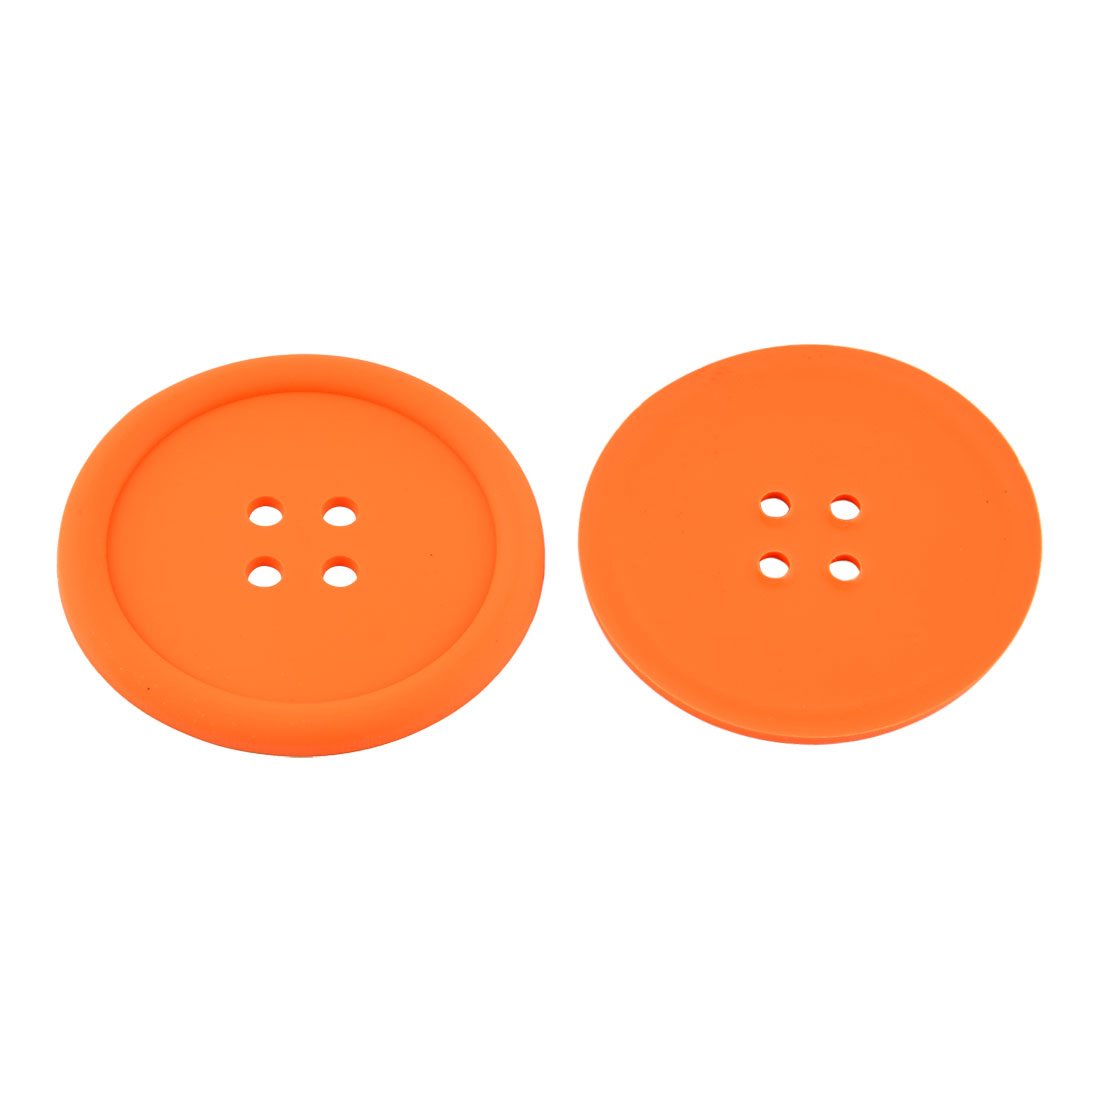 Household Silicone Coat Button Shaped Teapot Bottle Cup Coasters Mat Orange 2 Pcs